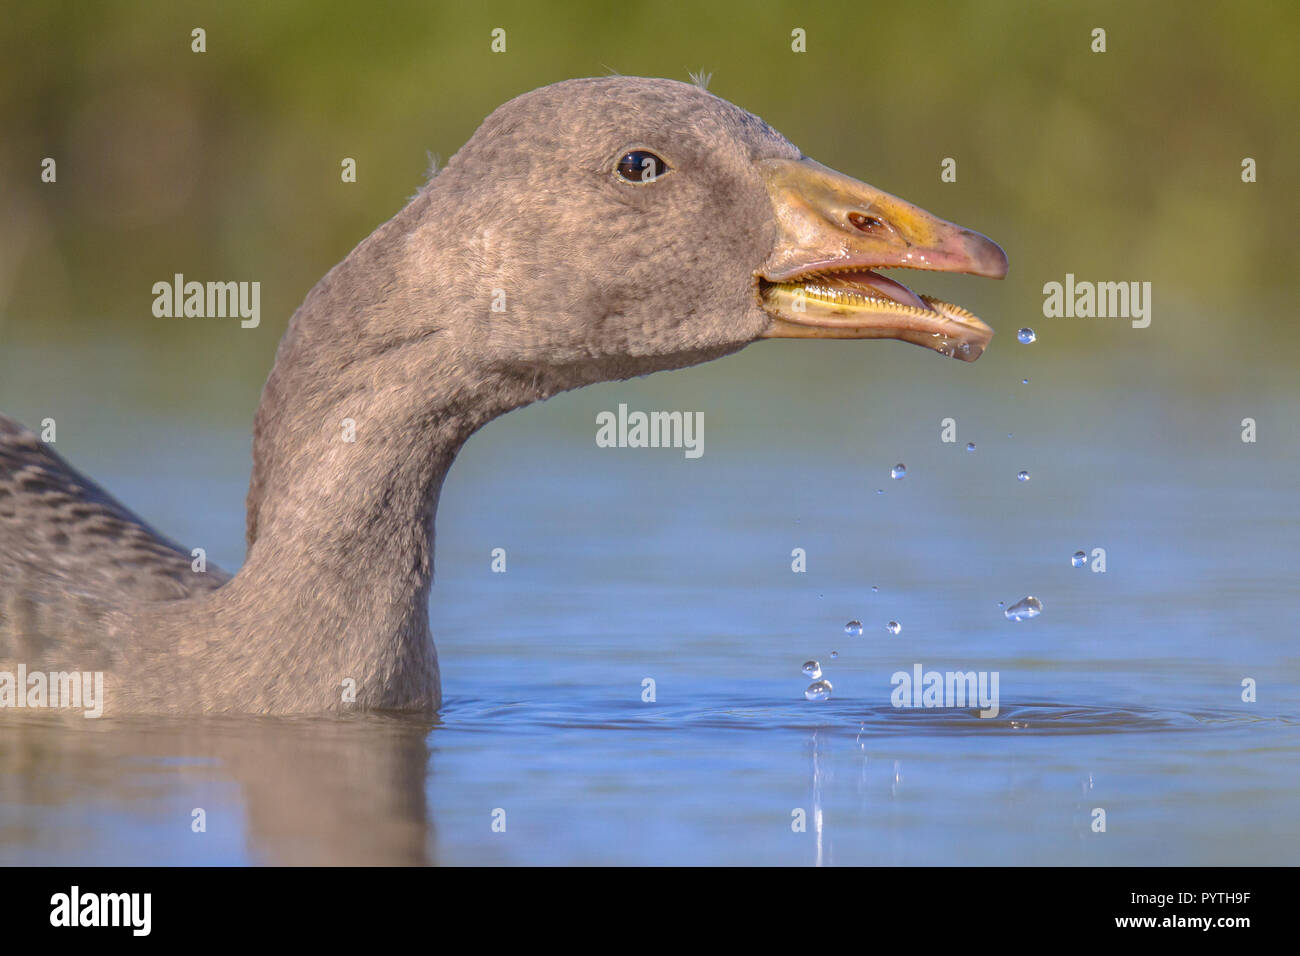 Swimming Greylag goose (Anser anser) bird drinking water. This species has a Palearctic distribution and breeds in Europe and North Asia. - Stock Image